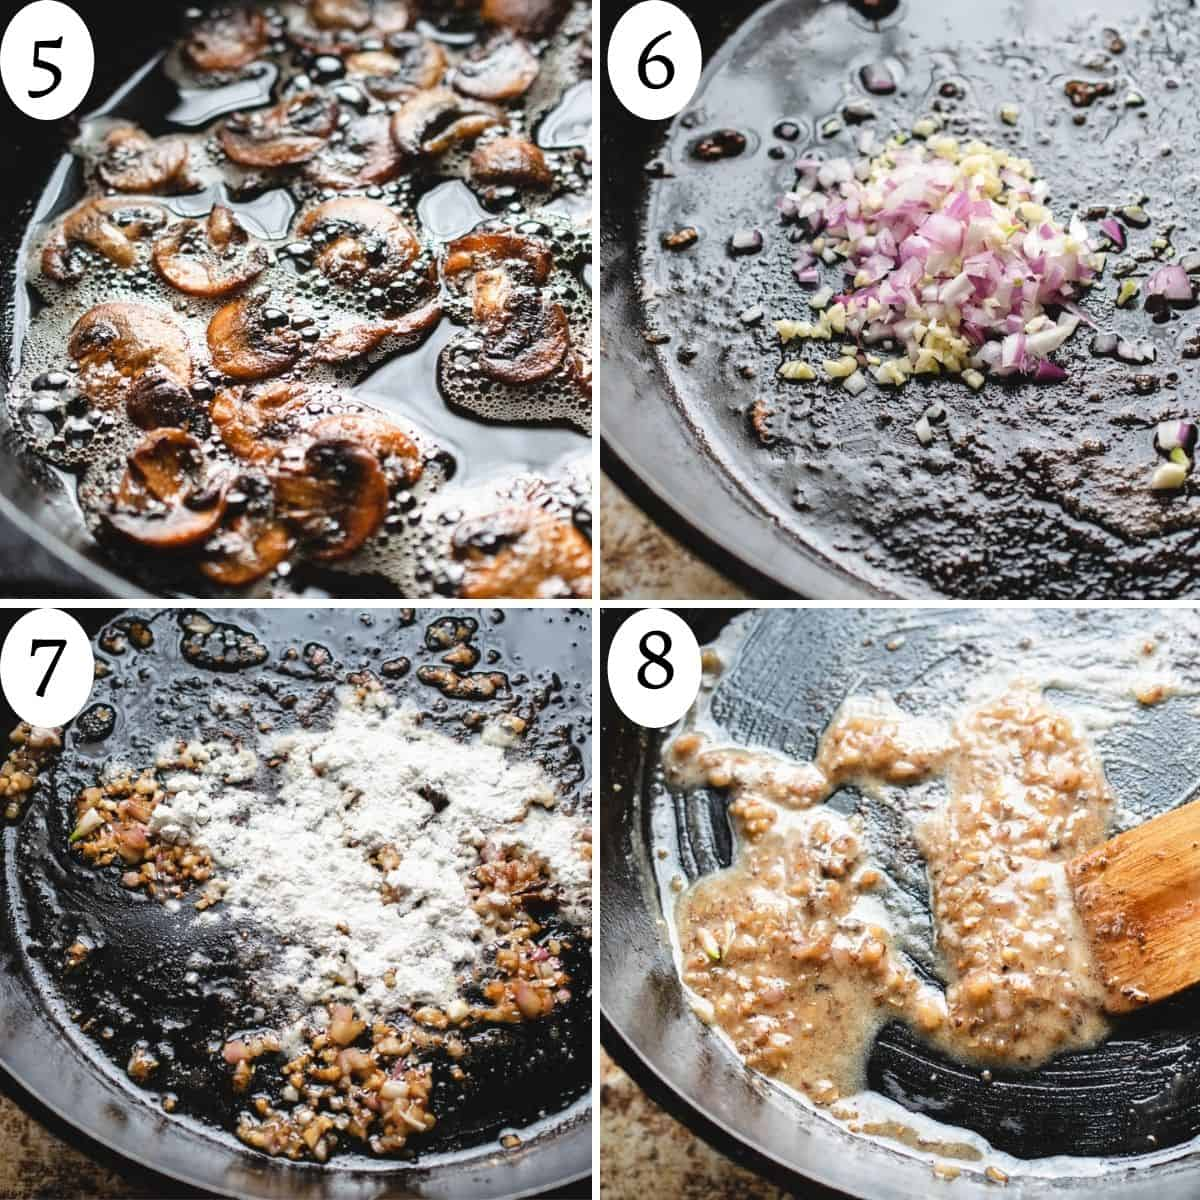 A collage of 4 images numbered 5 through 8 showing how to sauté the ingredients in the dish.